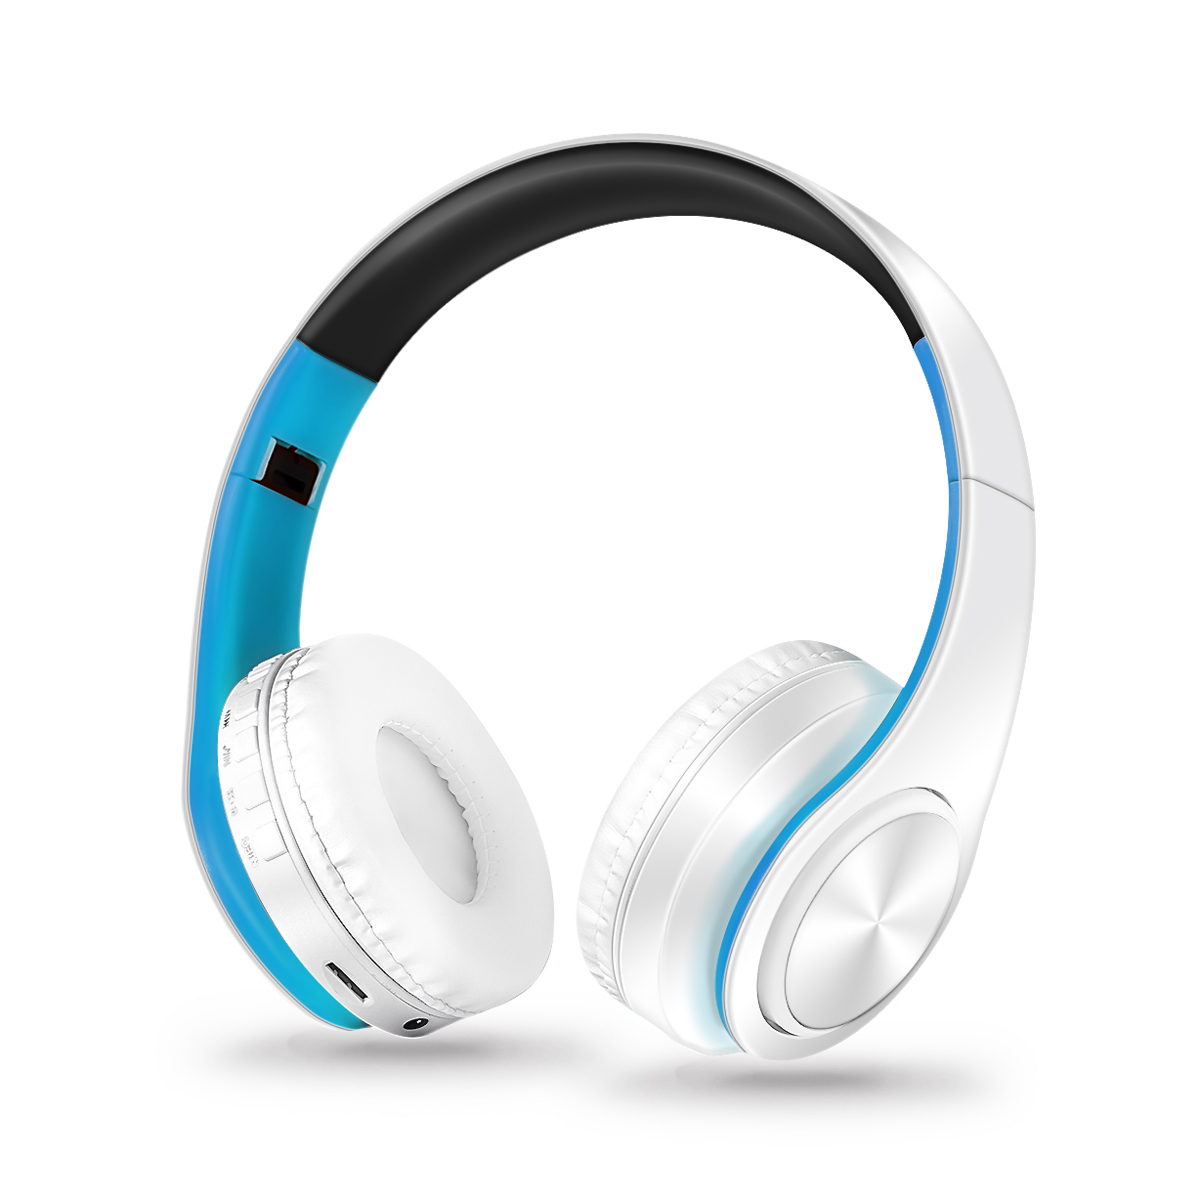 Noise Cancelling Mic HIFI Stereo Bass Bluetooth A2DP Foldable Game Sport Headphone Headset Over Ear Wireless/Wired FM Radio TF AUX for I Phone S amsung S8 L G N okia Tablet PC